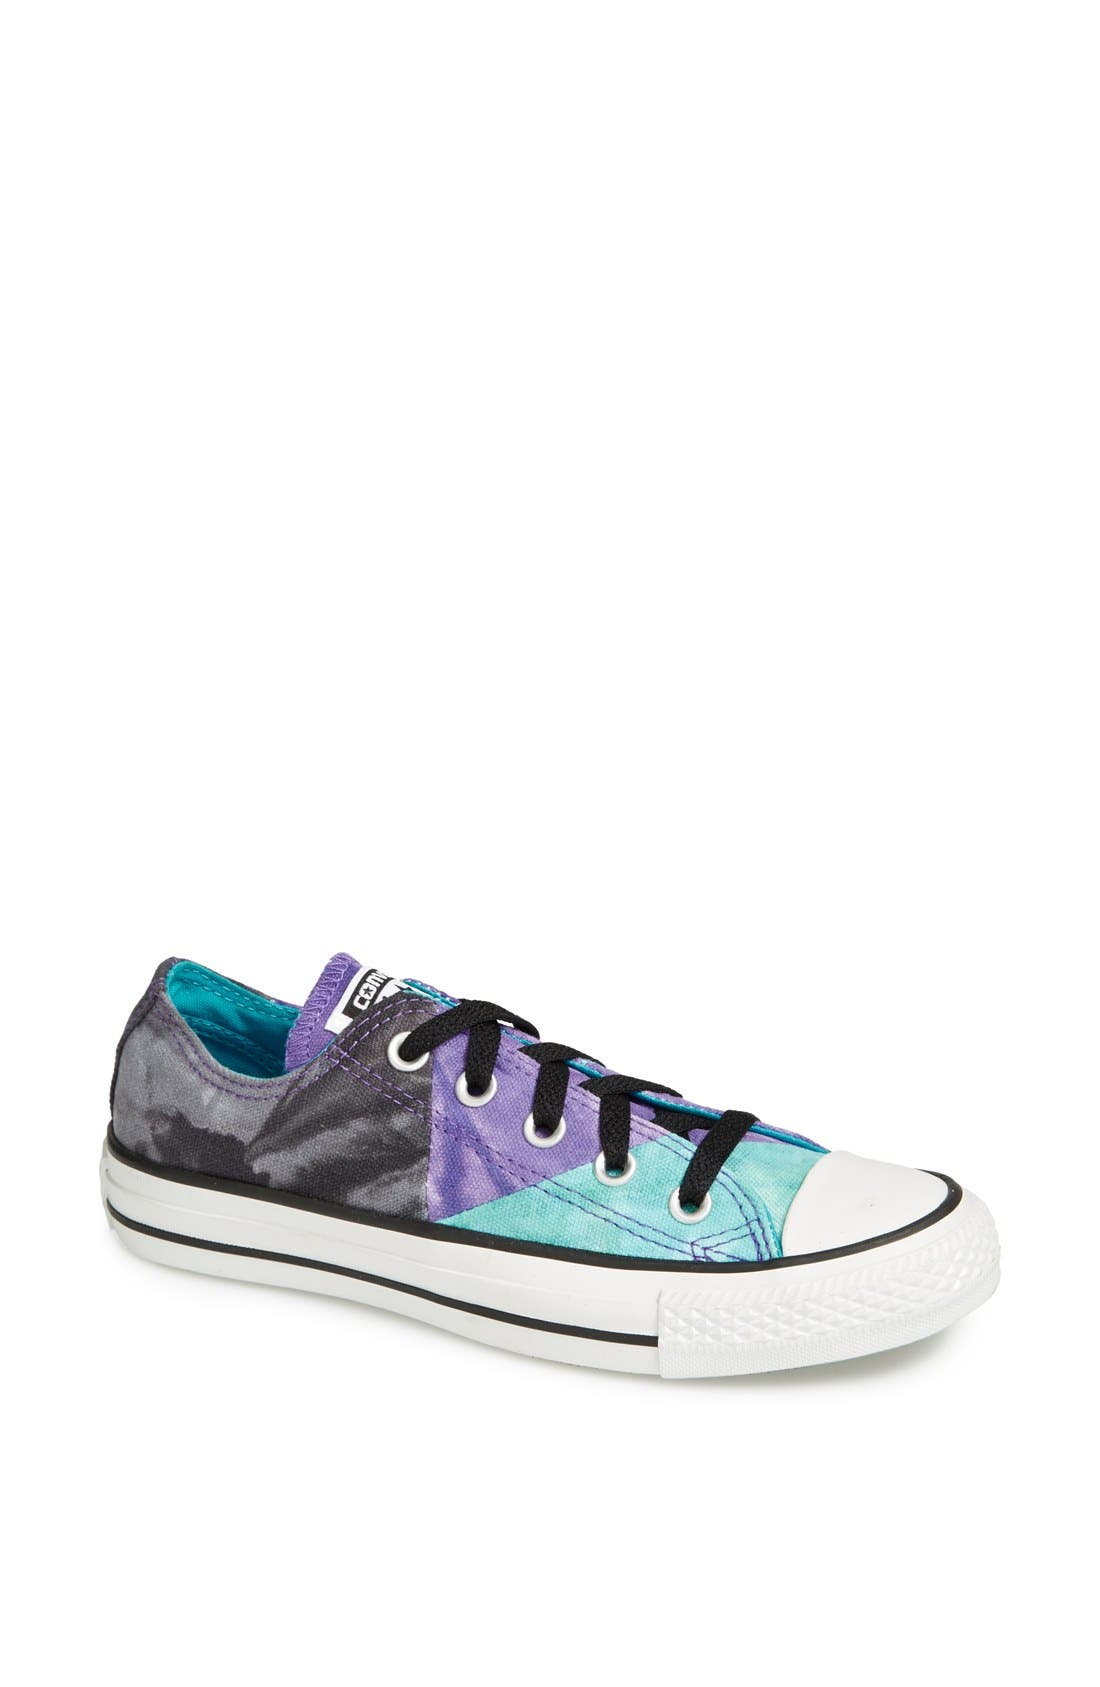 Alternate Image 1 Selected - Converse Chuck Taylor® All Star® 'Multi Panel' Low Top Sneaker (Women)